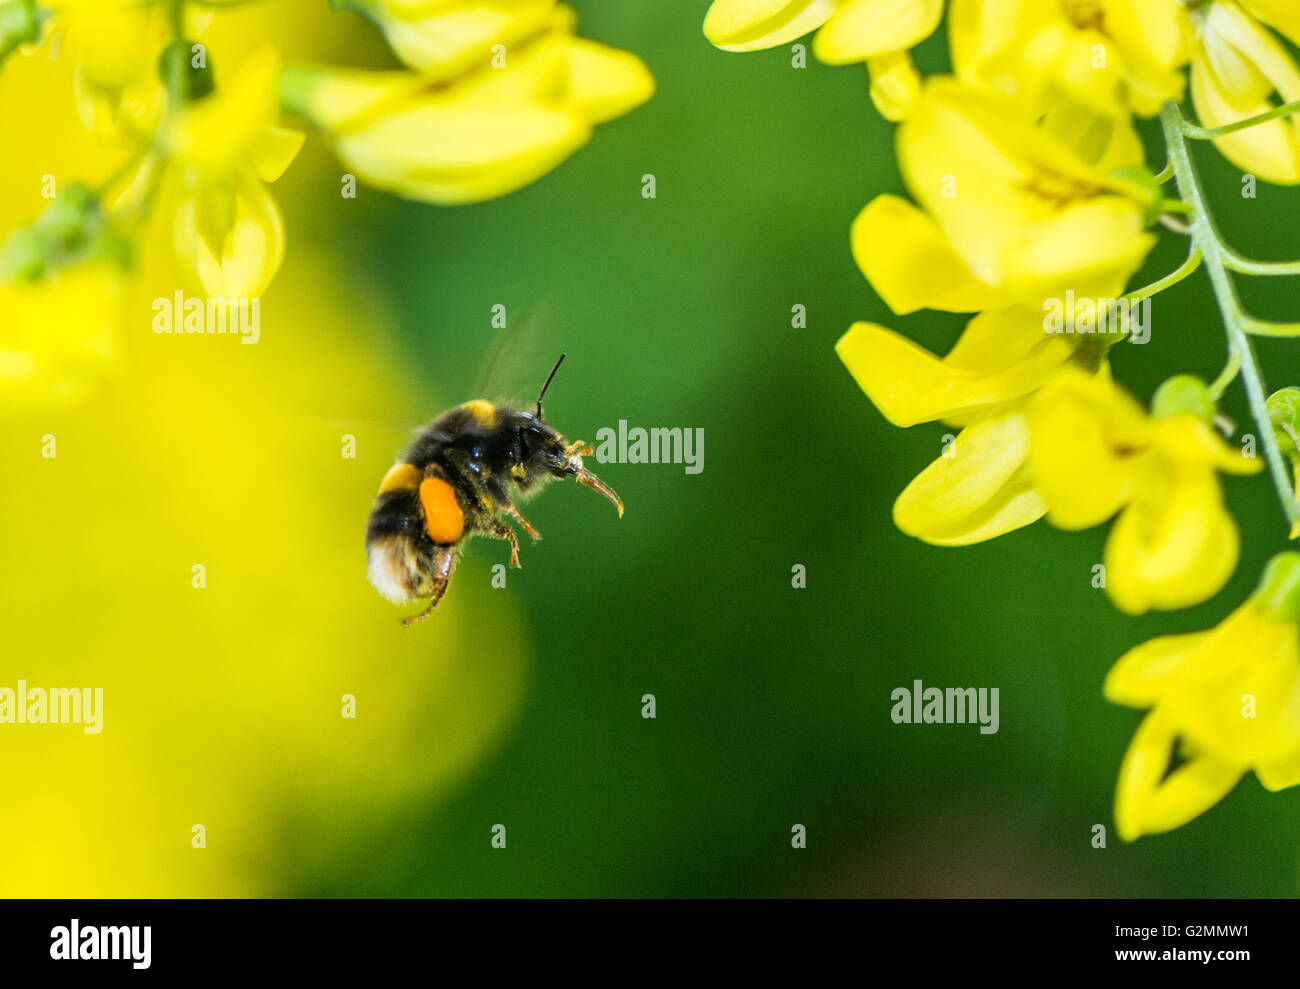 Bumble Bee with pollen sacs flying towards a yellow Laburnum flower - Stock Image